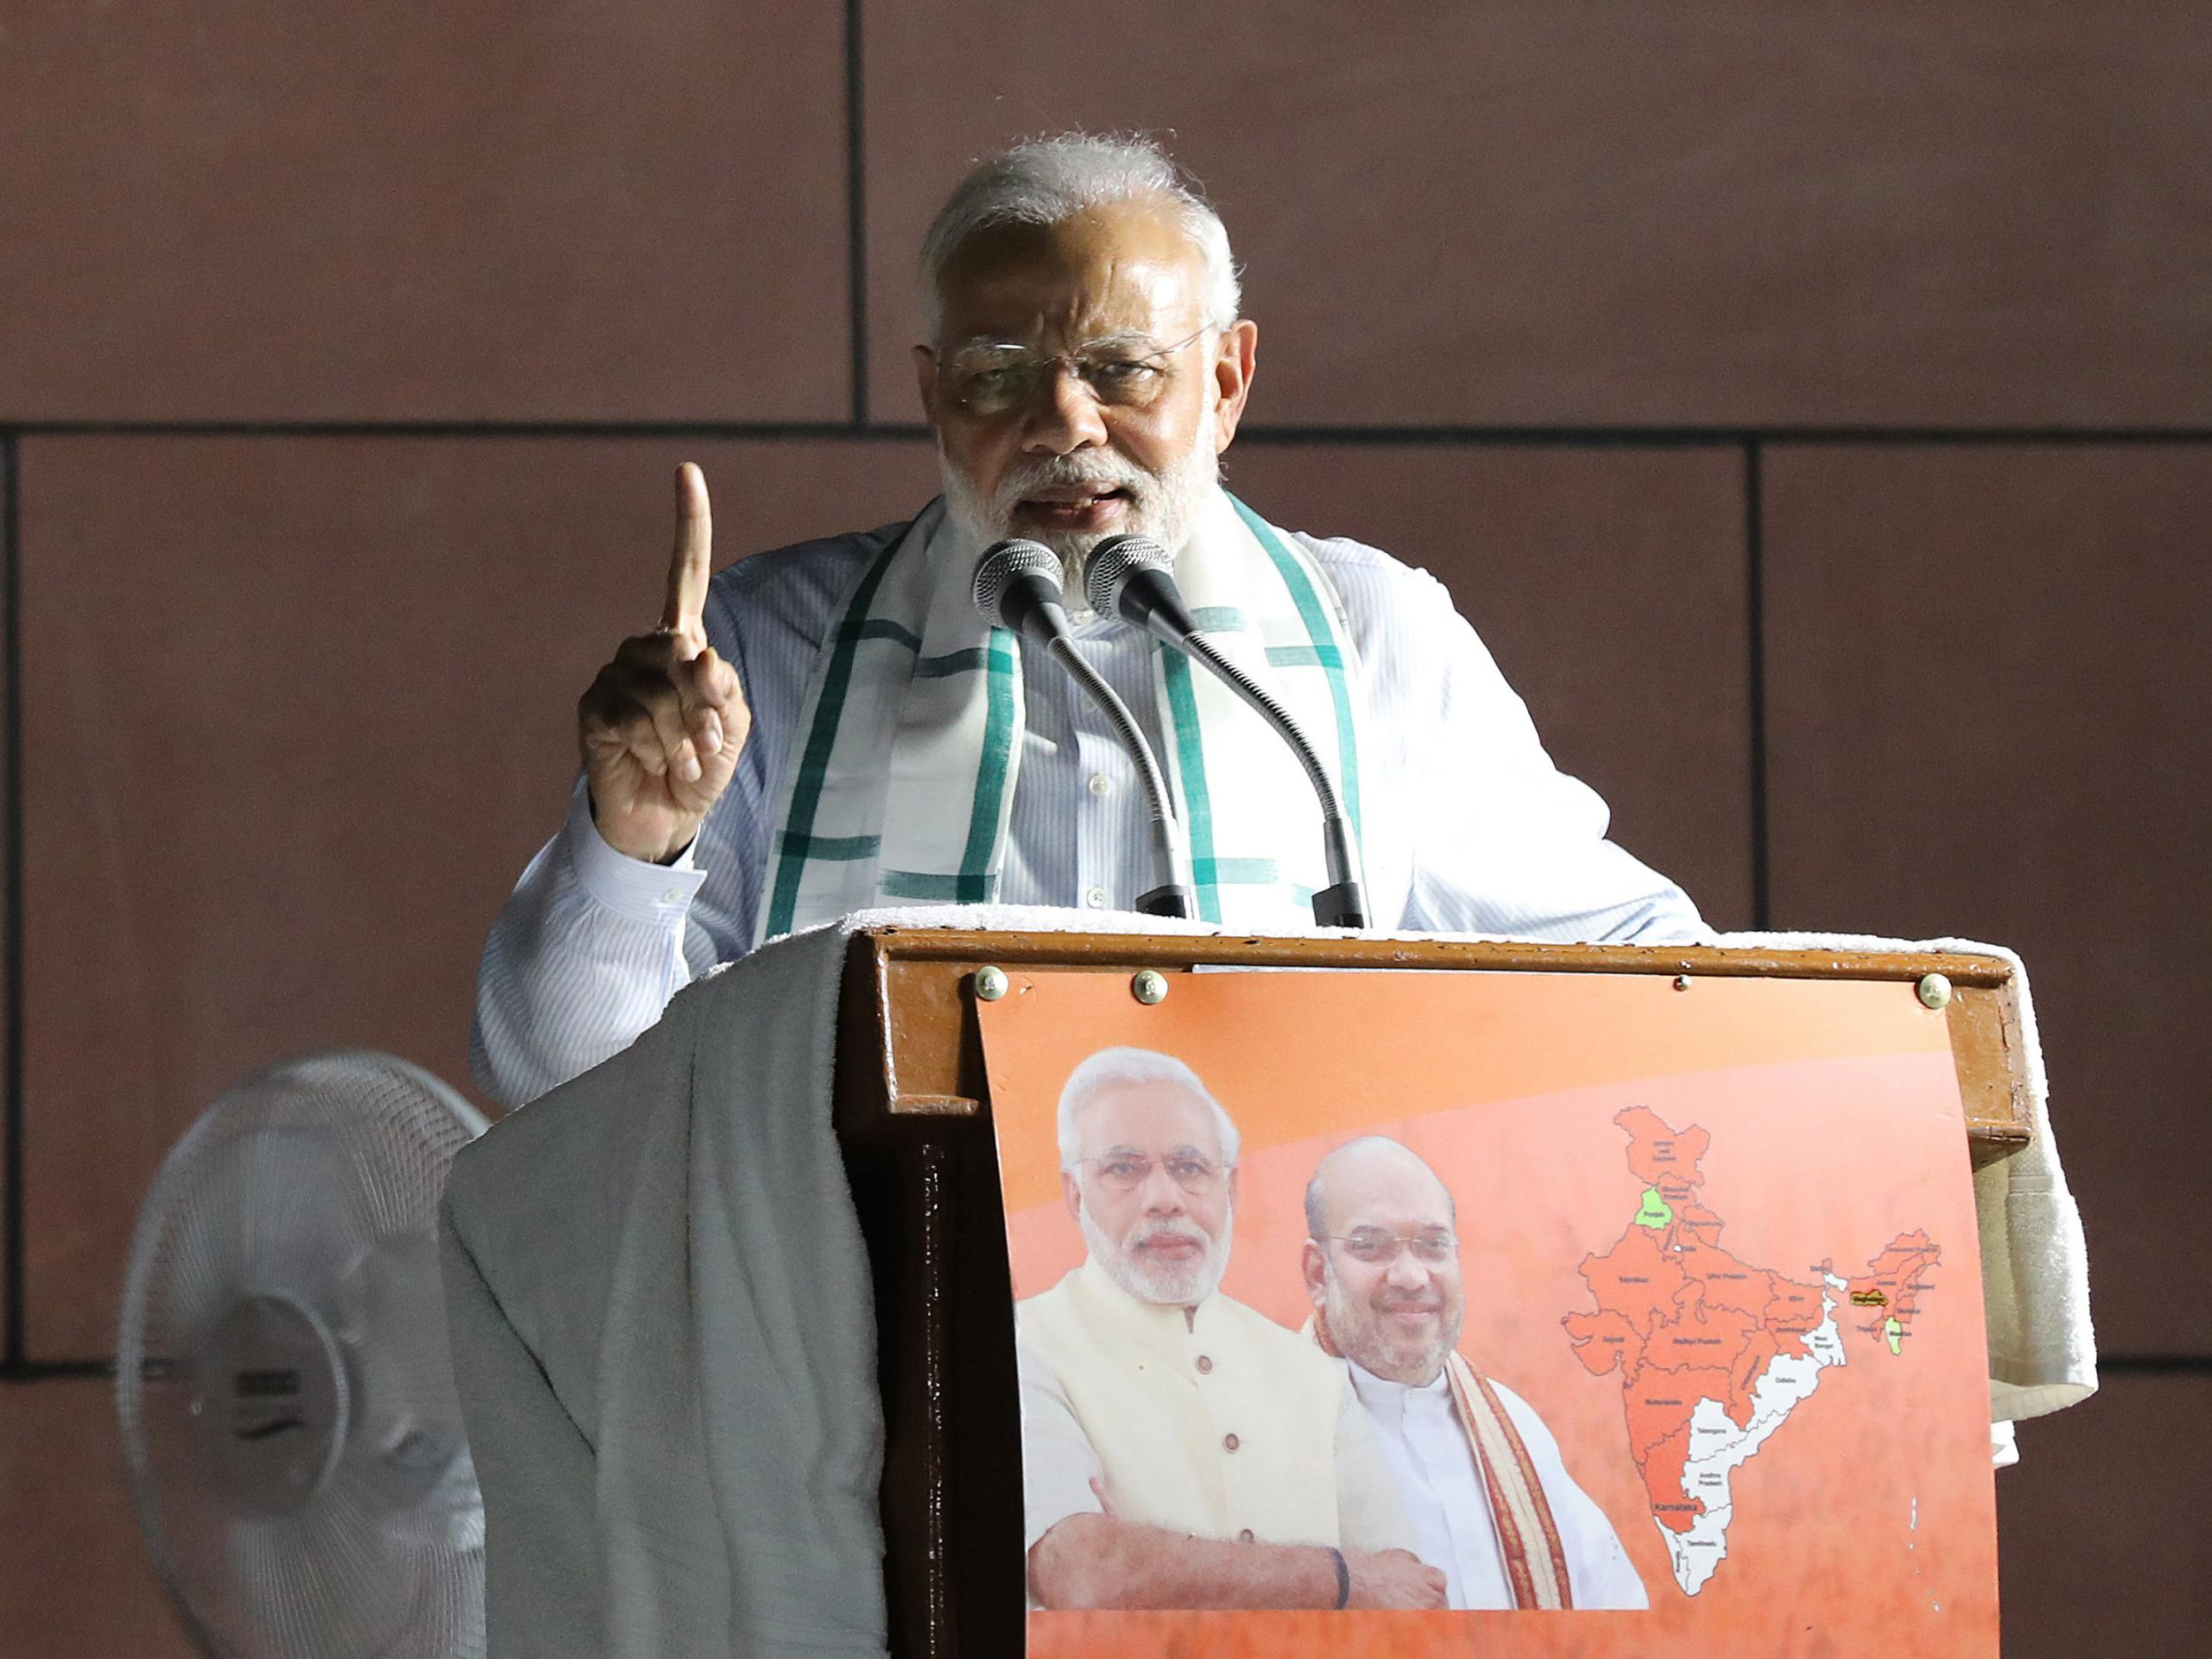 India election: Party of PM Narendra Modi wins emphatic victory in key state vote